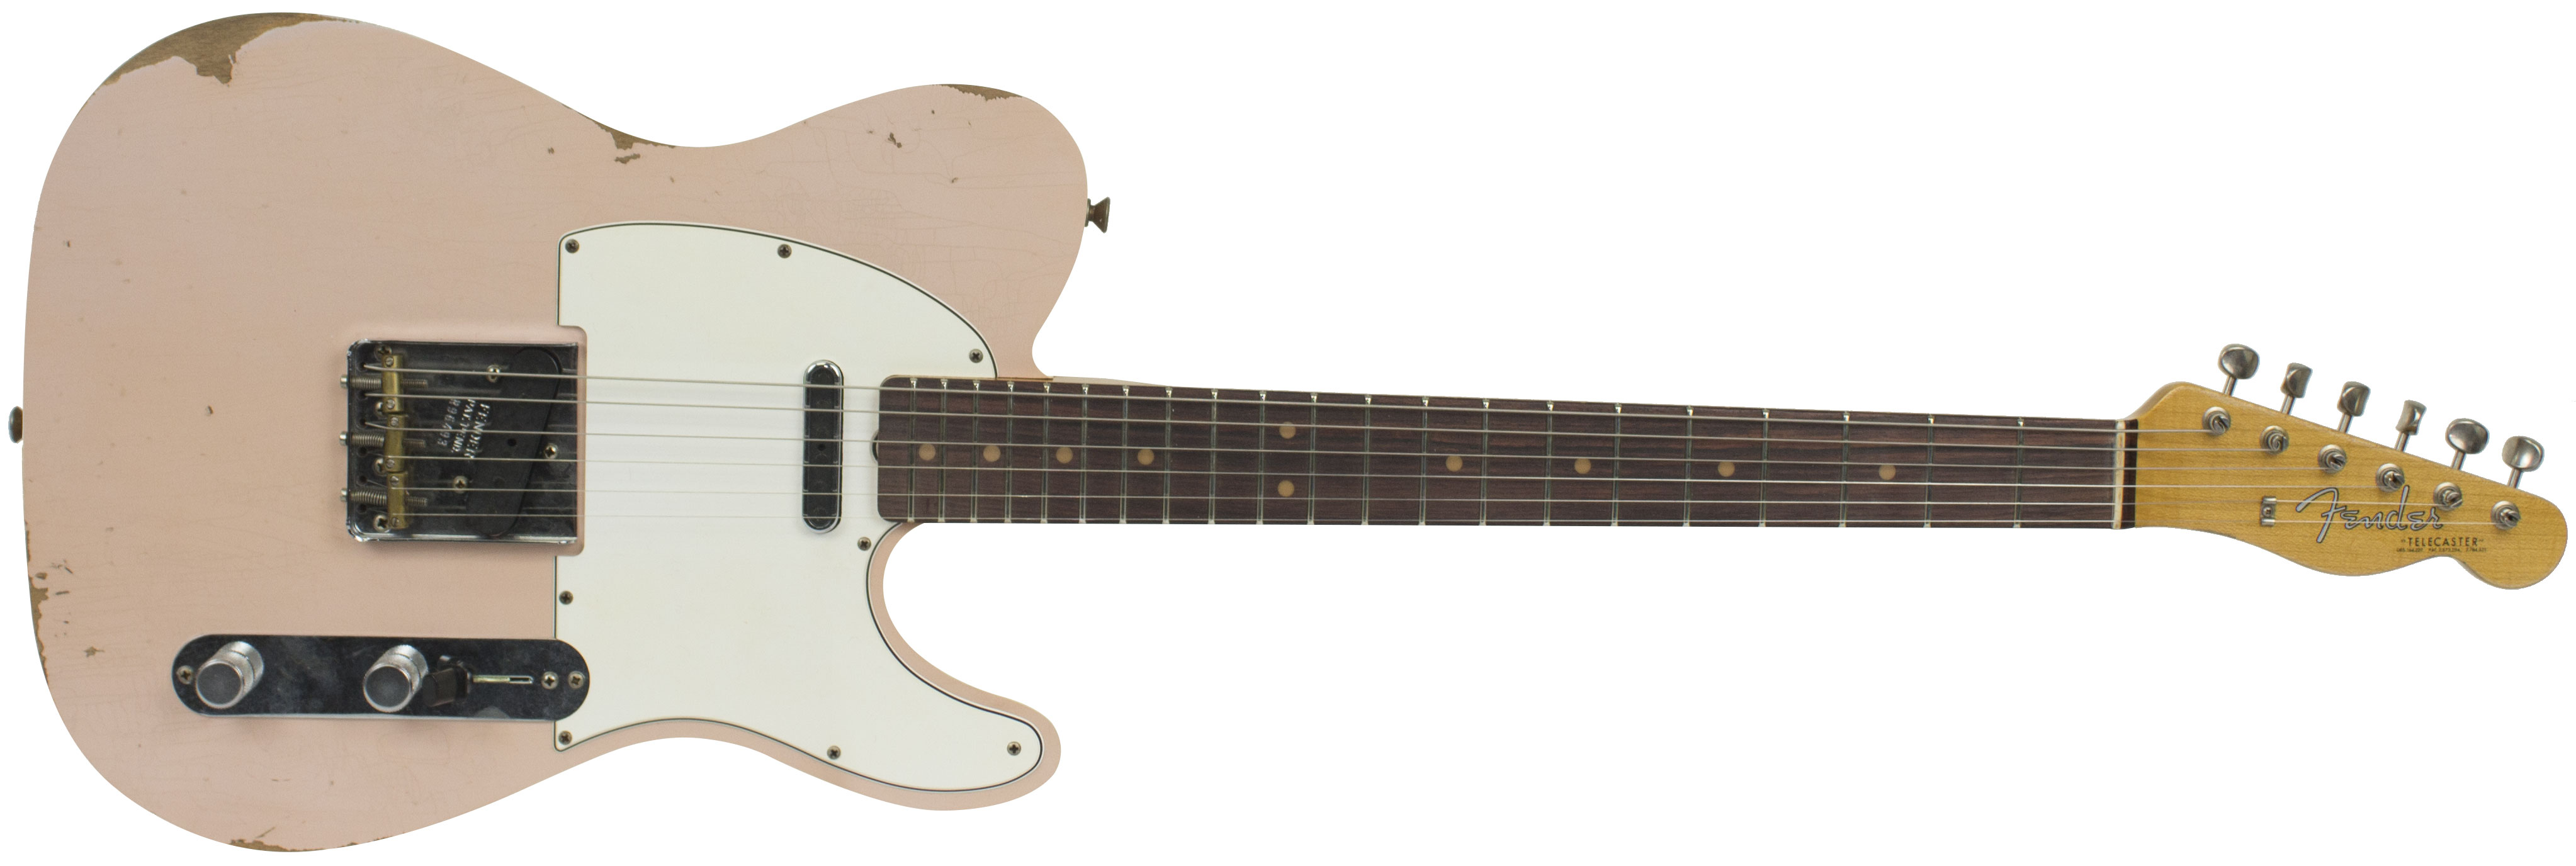 GUITARRA FENDER 60S TELECASTER CUSTOM RELIC LTD EDITION 923-5000-699 FADED AGED SHELL PINK